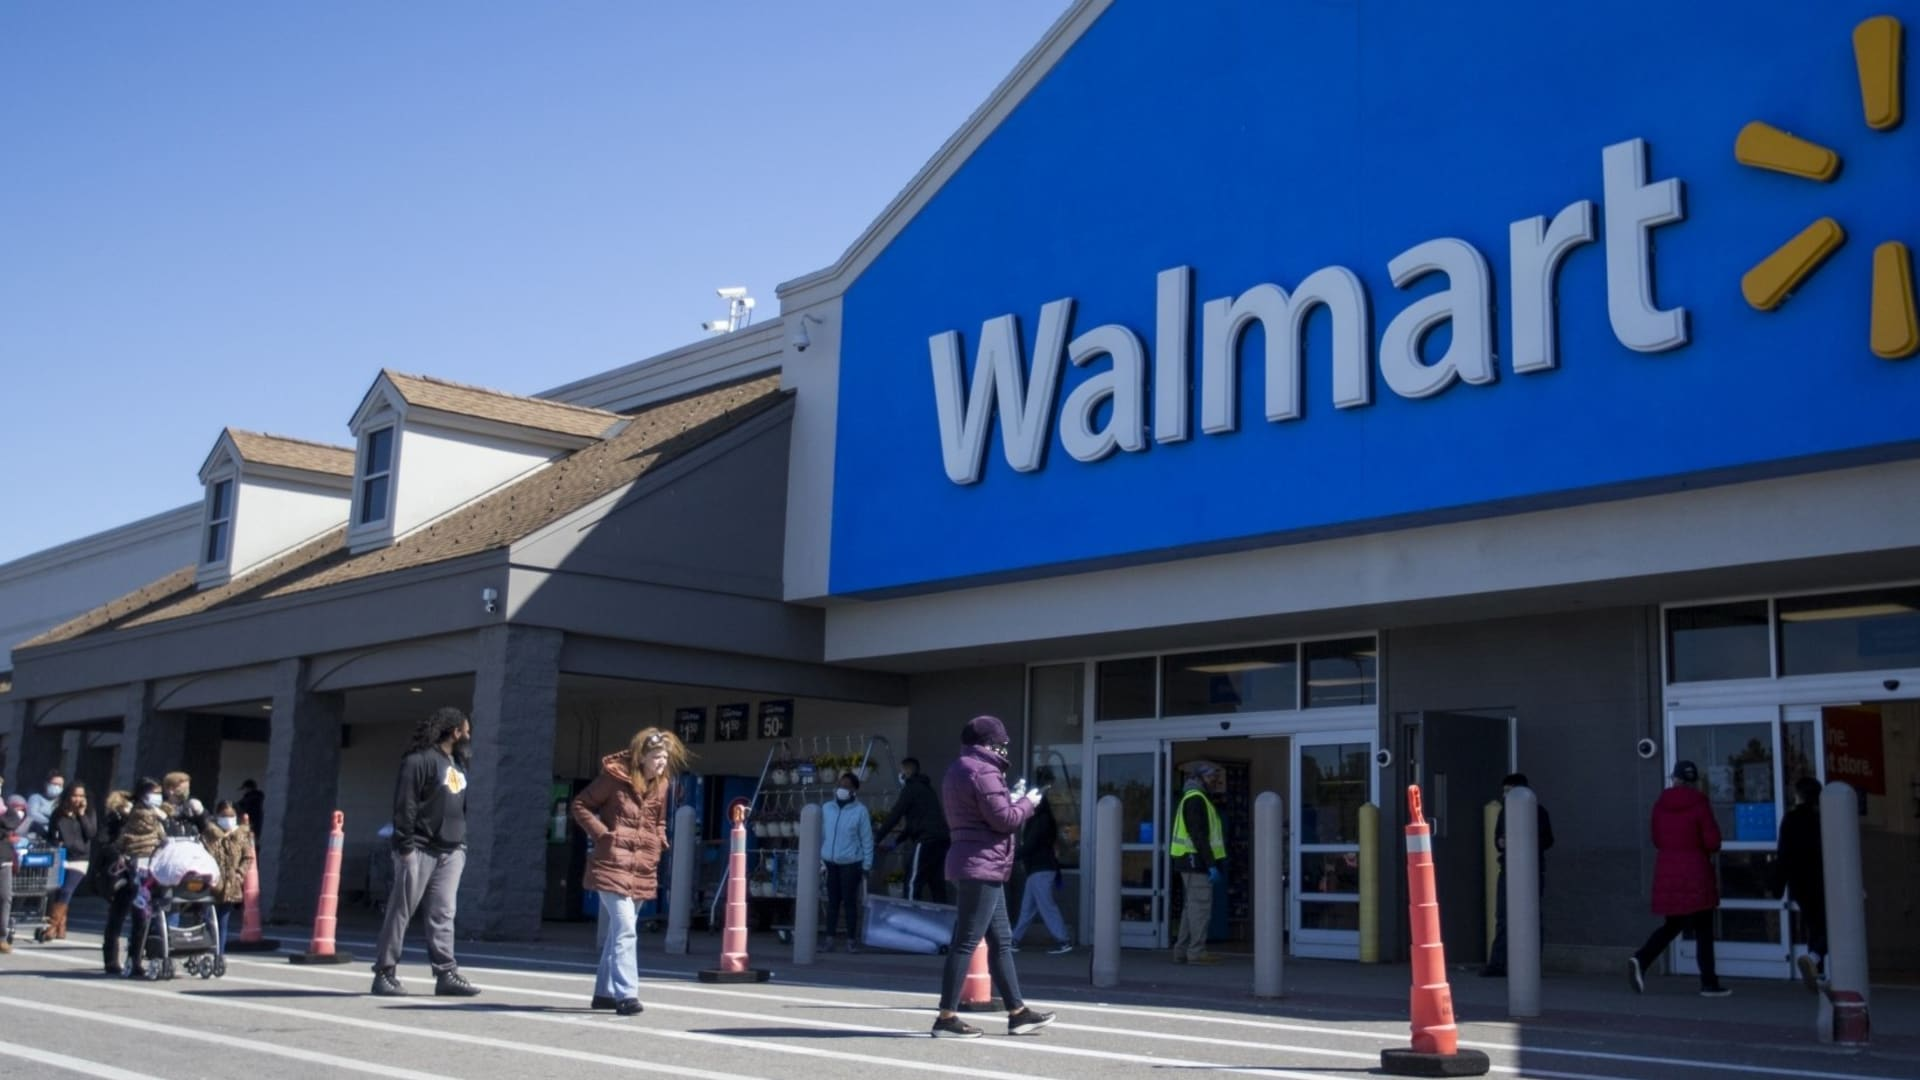 Walmart Just Made a Really Fun Announcement. Here's Why It's a Smart Business Move